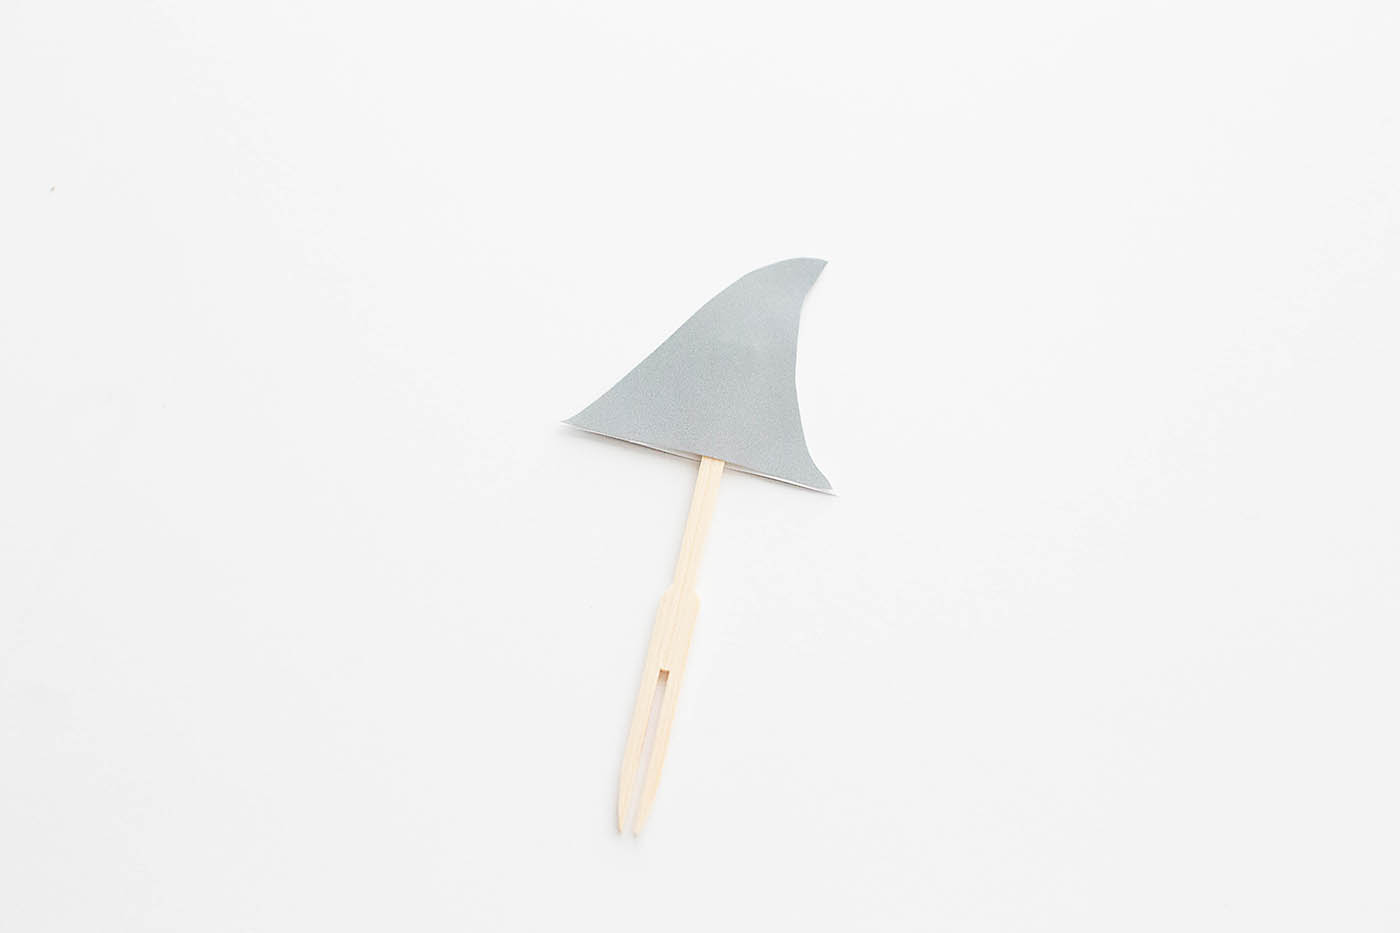 Free printable shark fin pick perfect for your shark lover and to celebrate Shark Week!